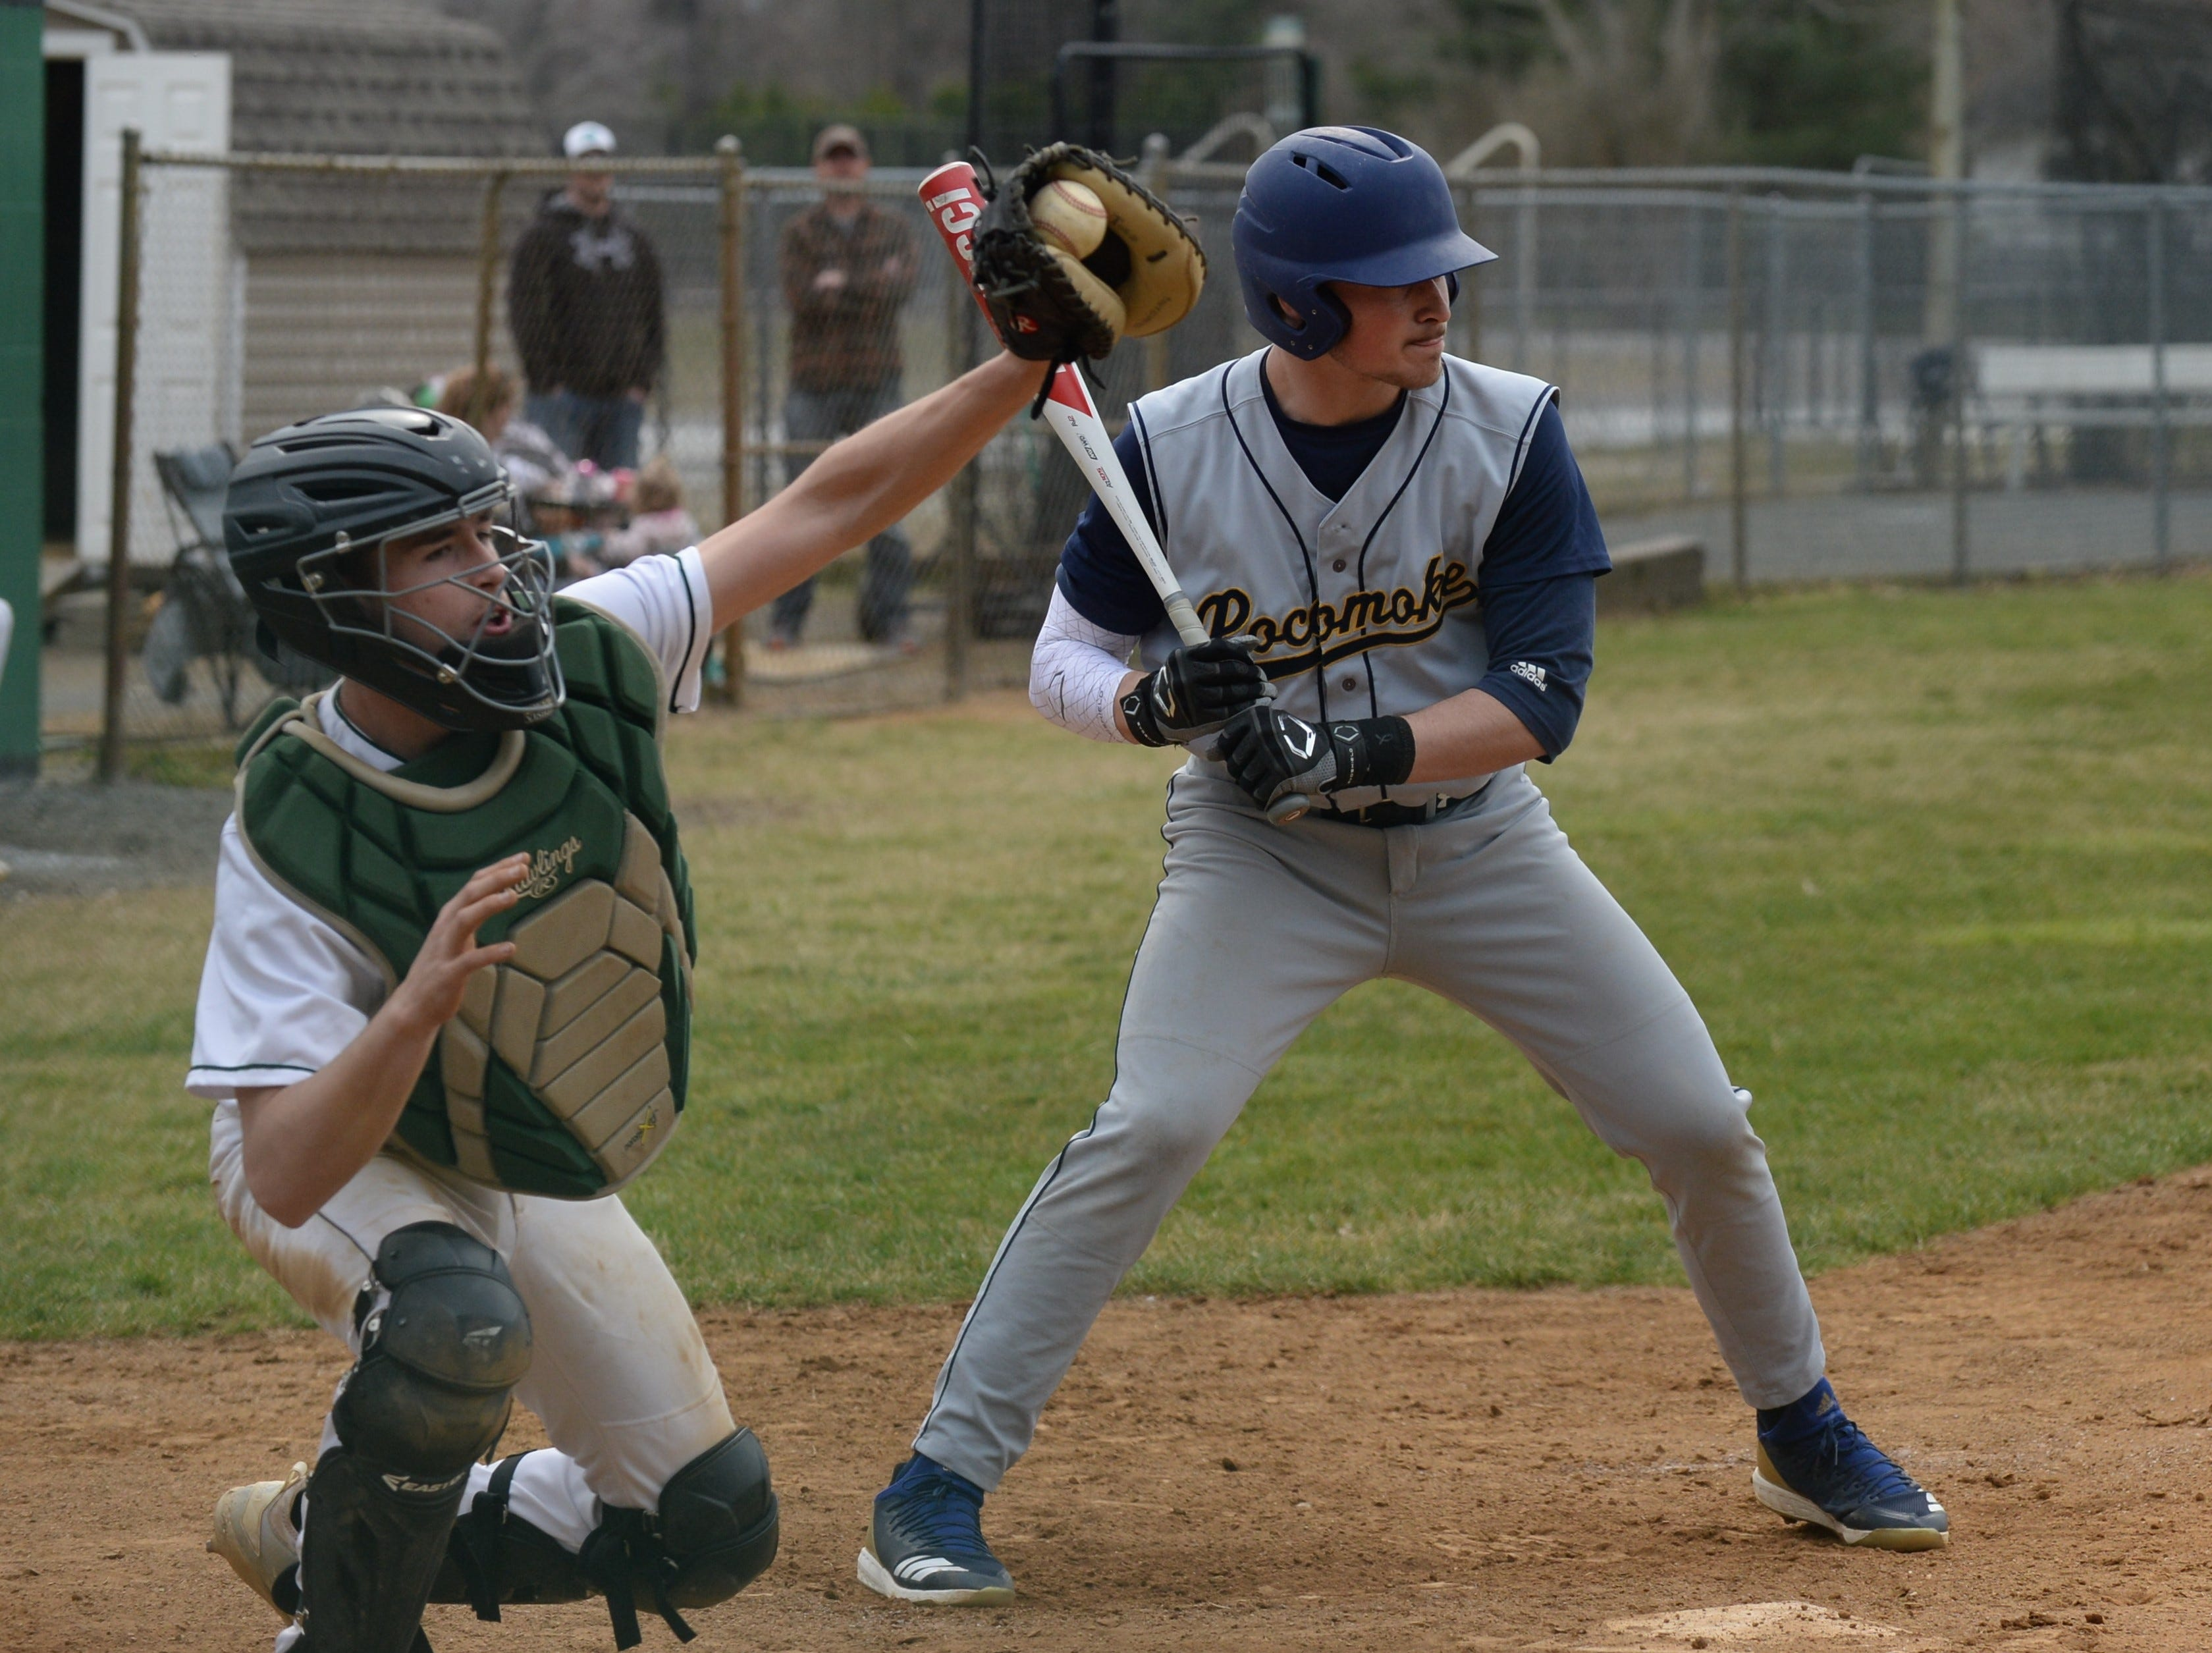 Mardela catcher Colton Lanham catches a high pitch as Pocomoke's Ethan Peterson mans the plate on Monday, March 25, 2019.